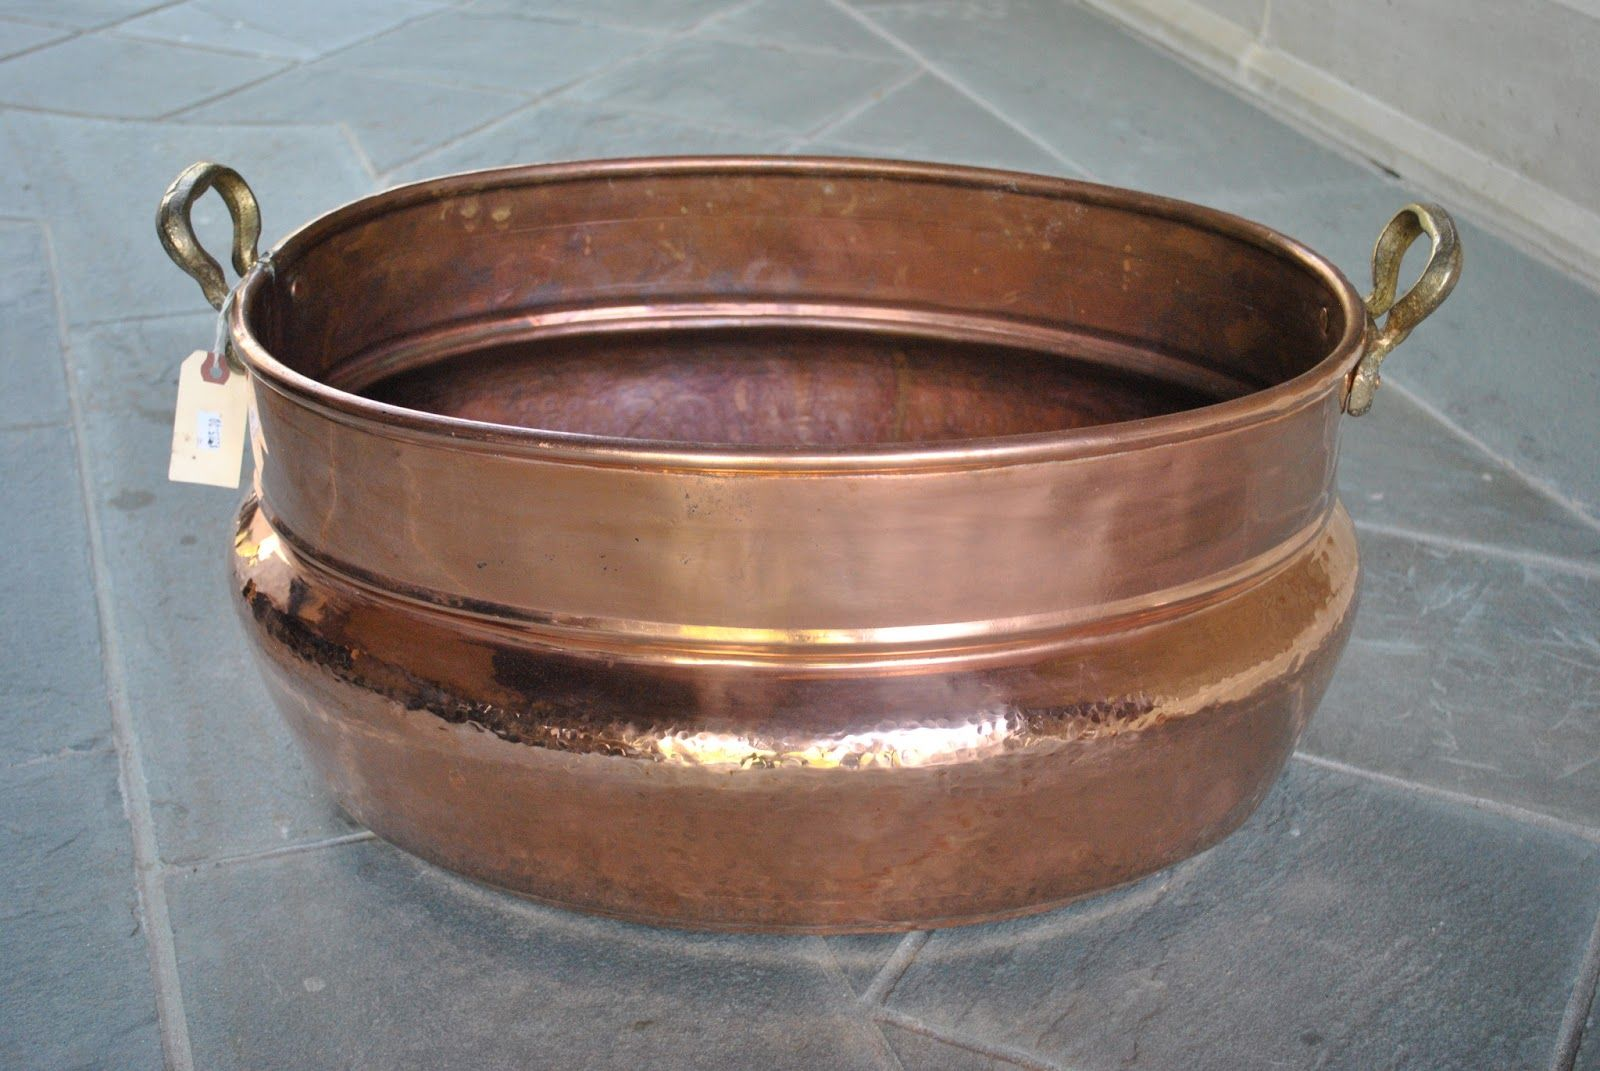 Copper Cook Pot with gorgeous handles.  Repurpose as a top mount sink and have a gorgeous powder bath!